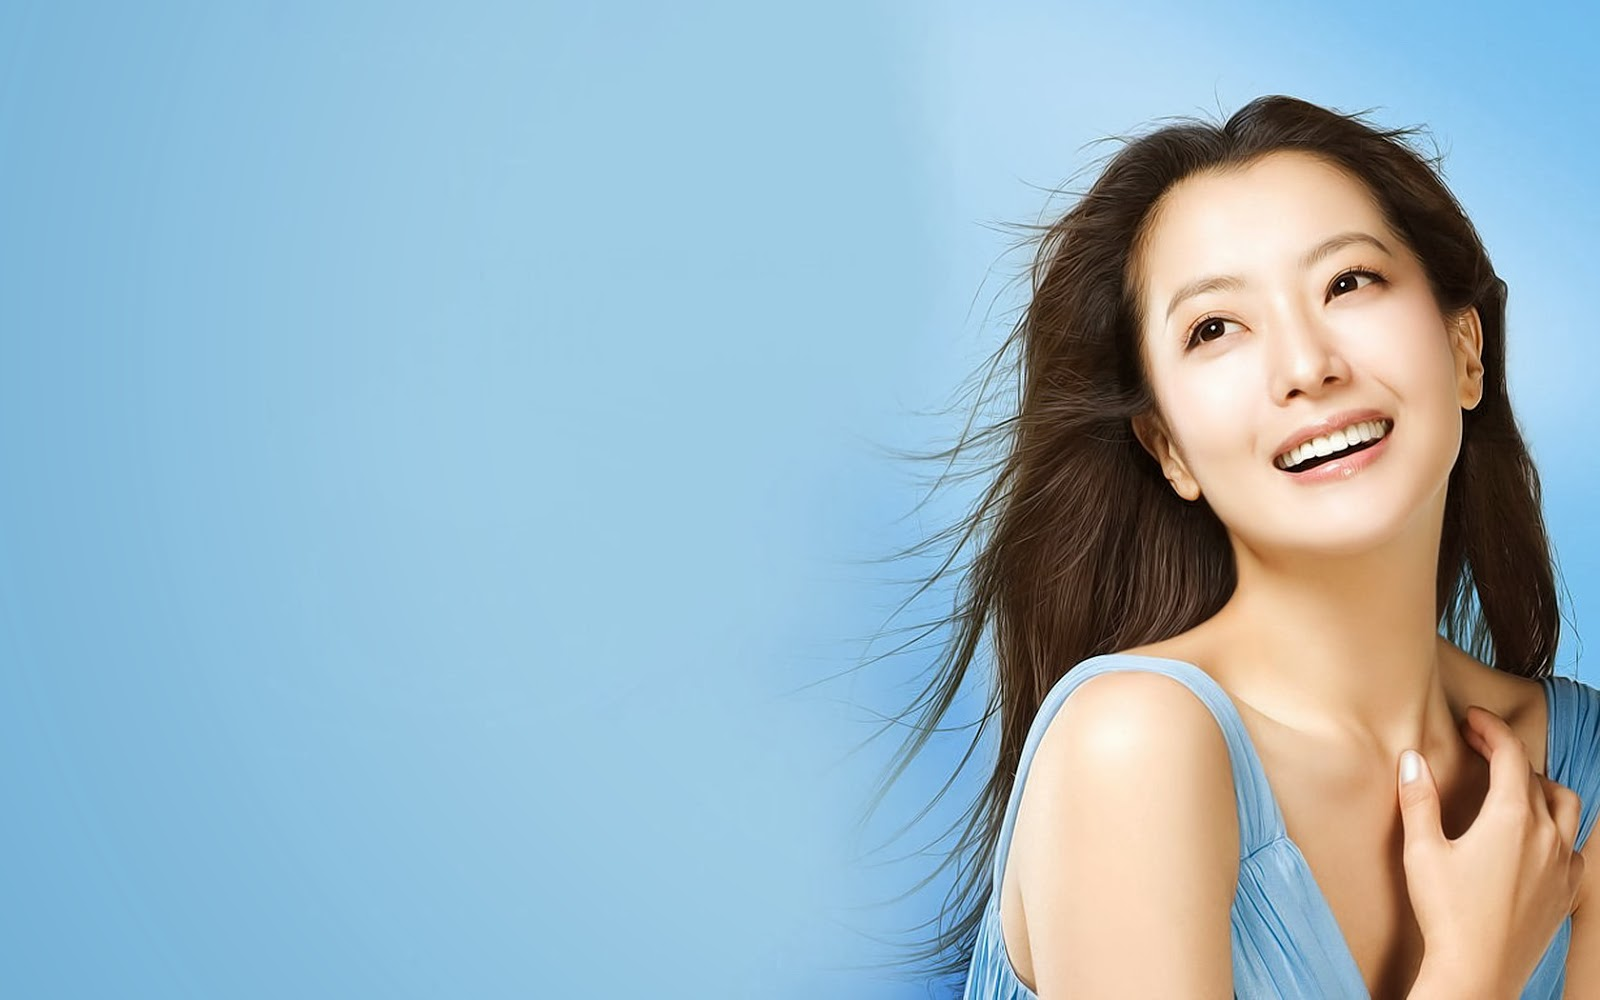 Hd Kim Hee Sun Wallpaper | | wallpaperspick.com